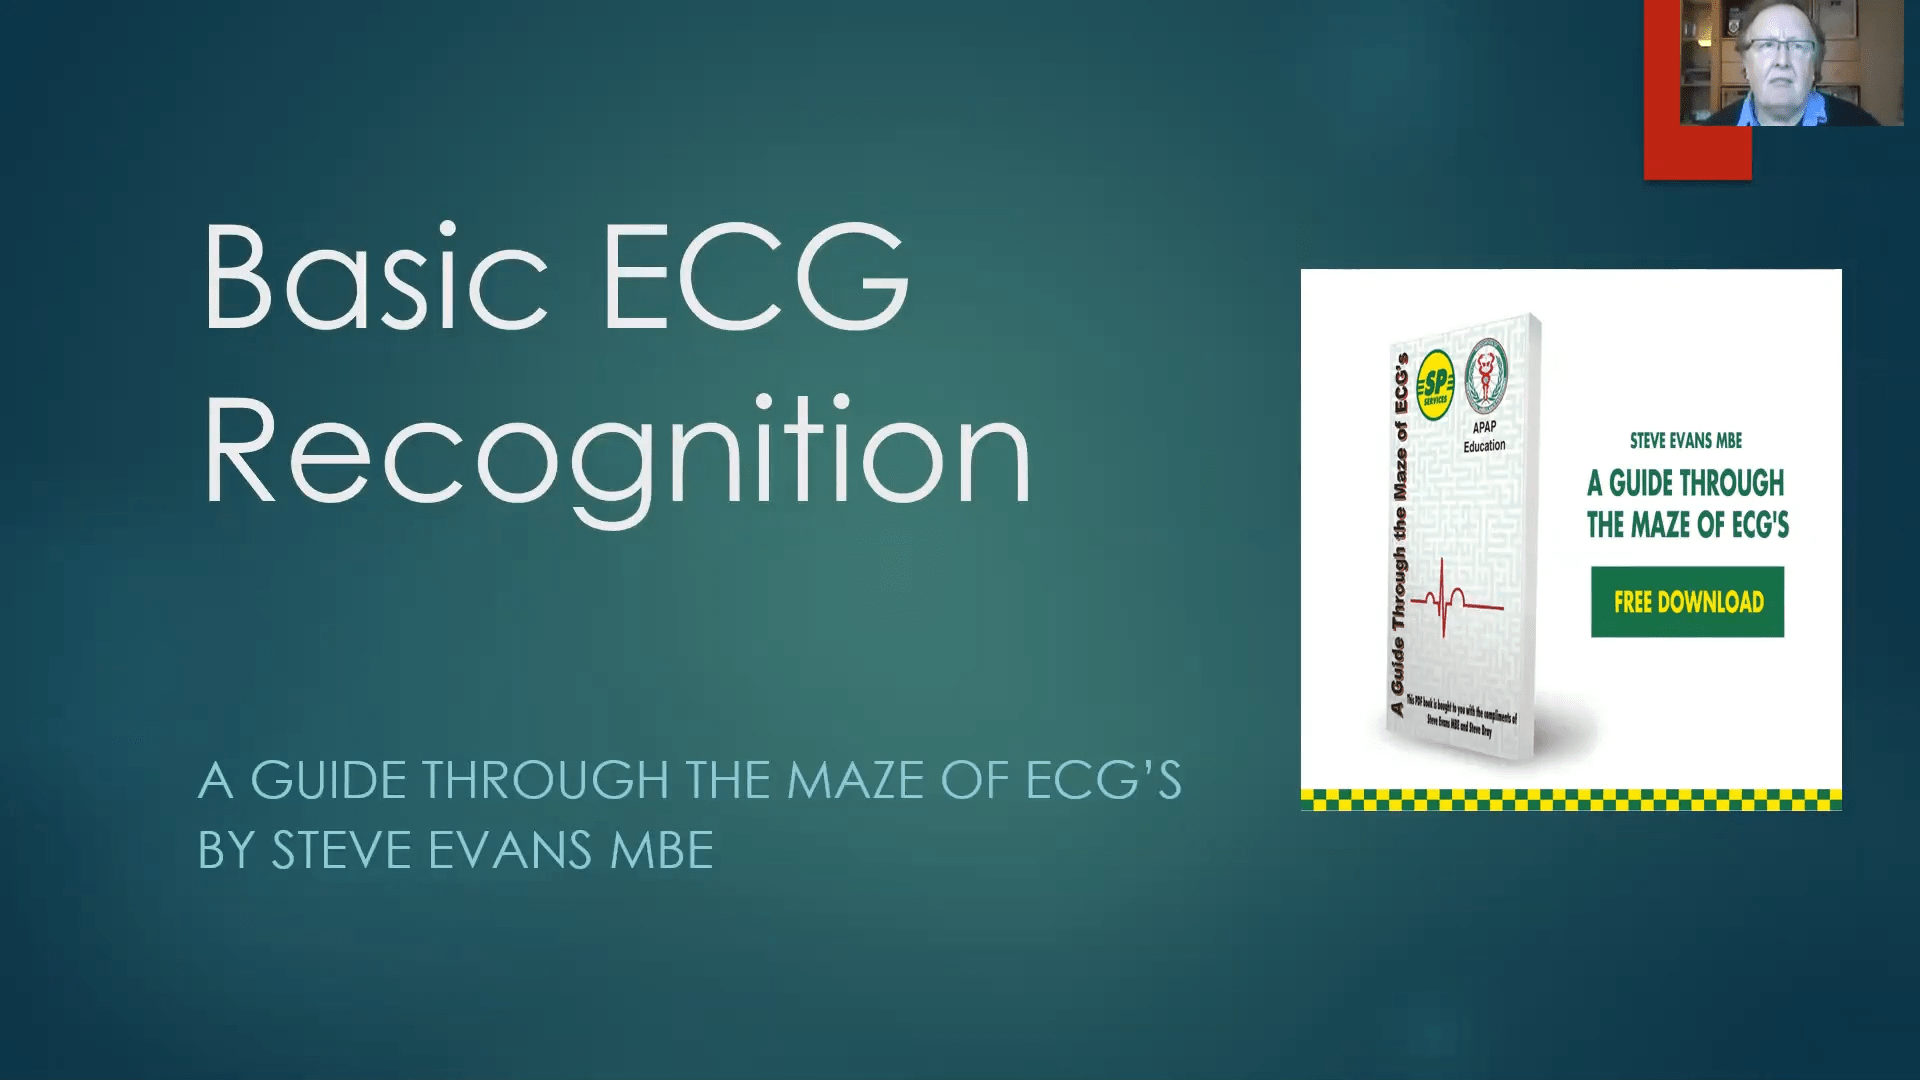 Steve Evans MBE - A Guide to ECG's